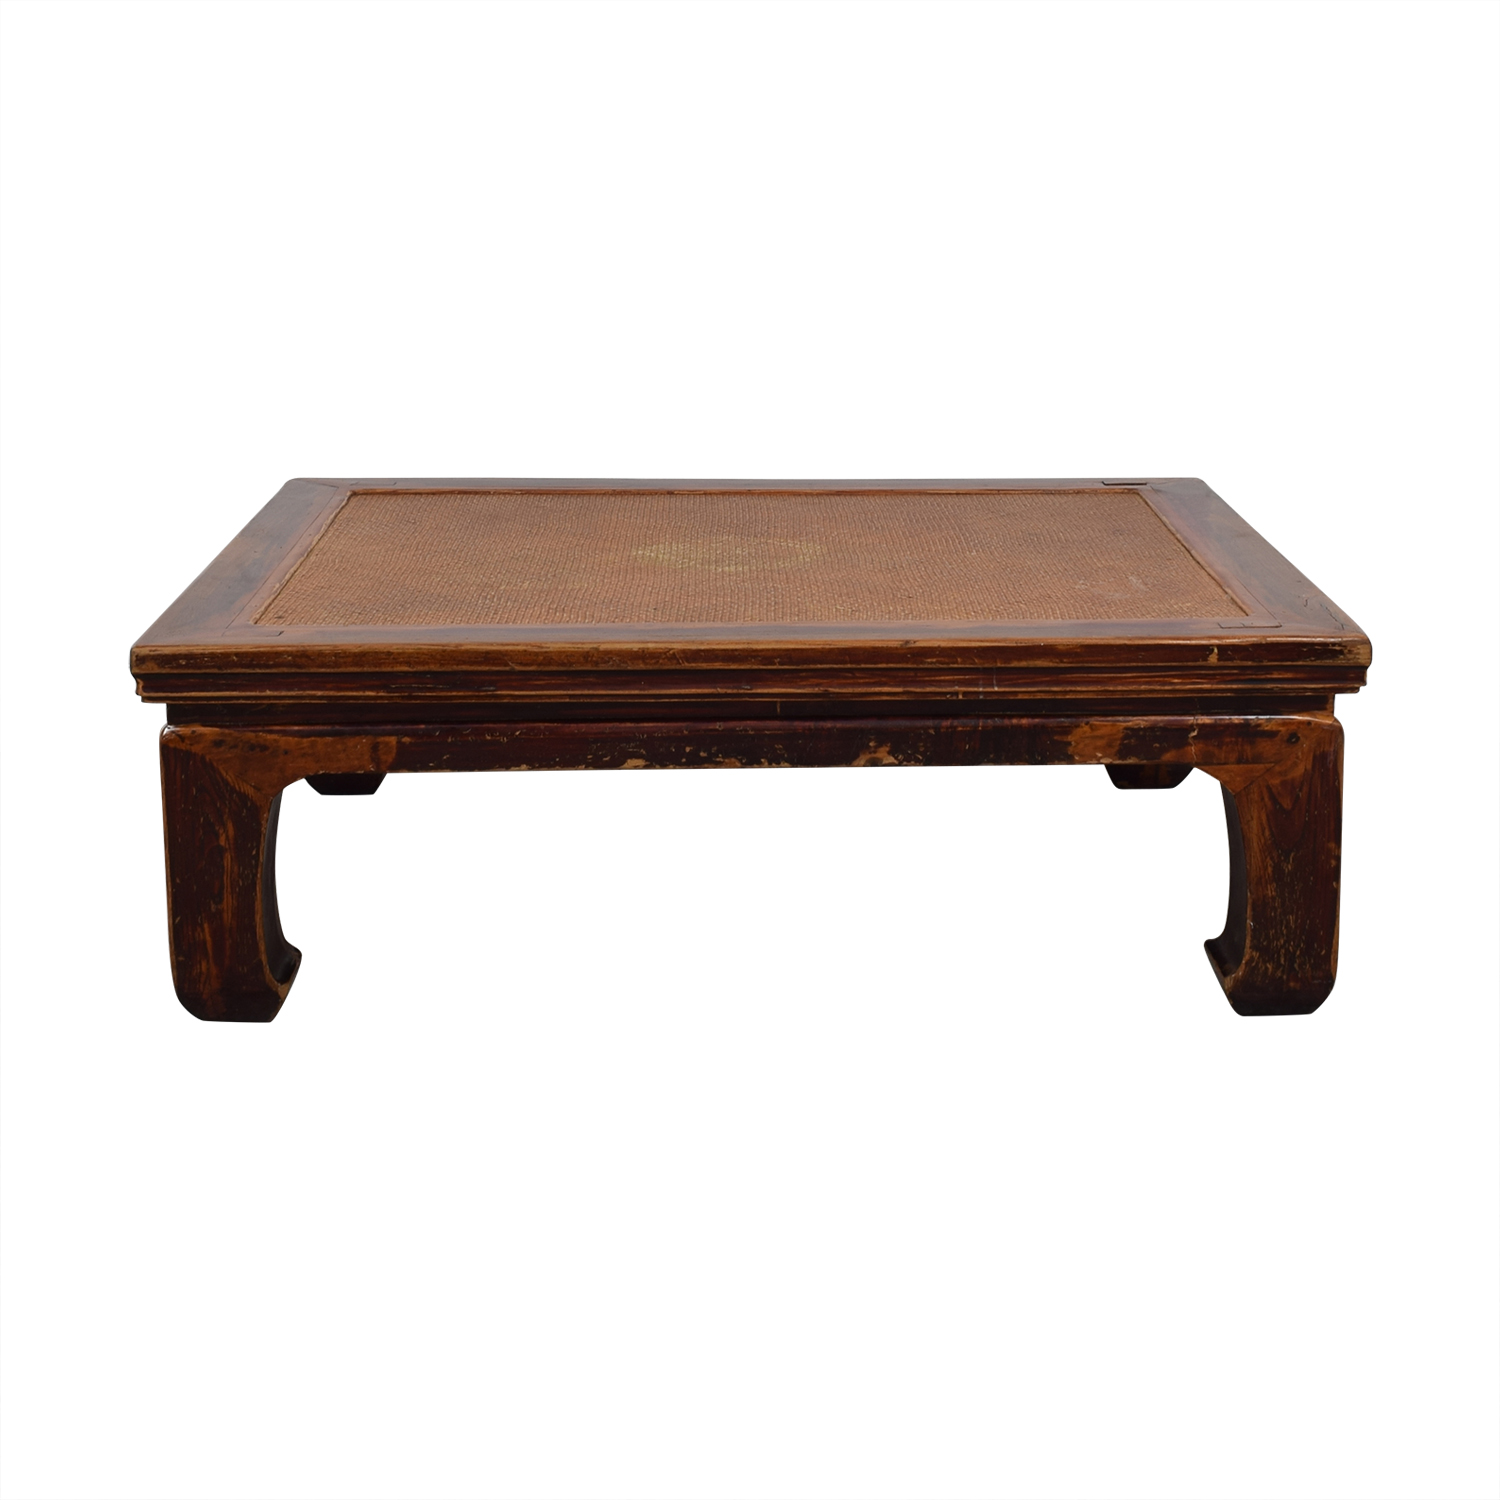 Antique 19th Century Korean Rosewood Low Coffee Table